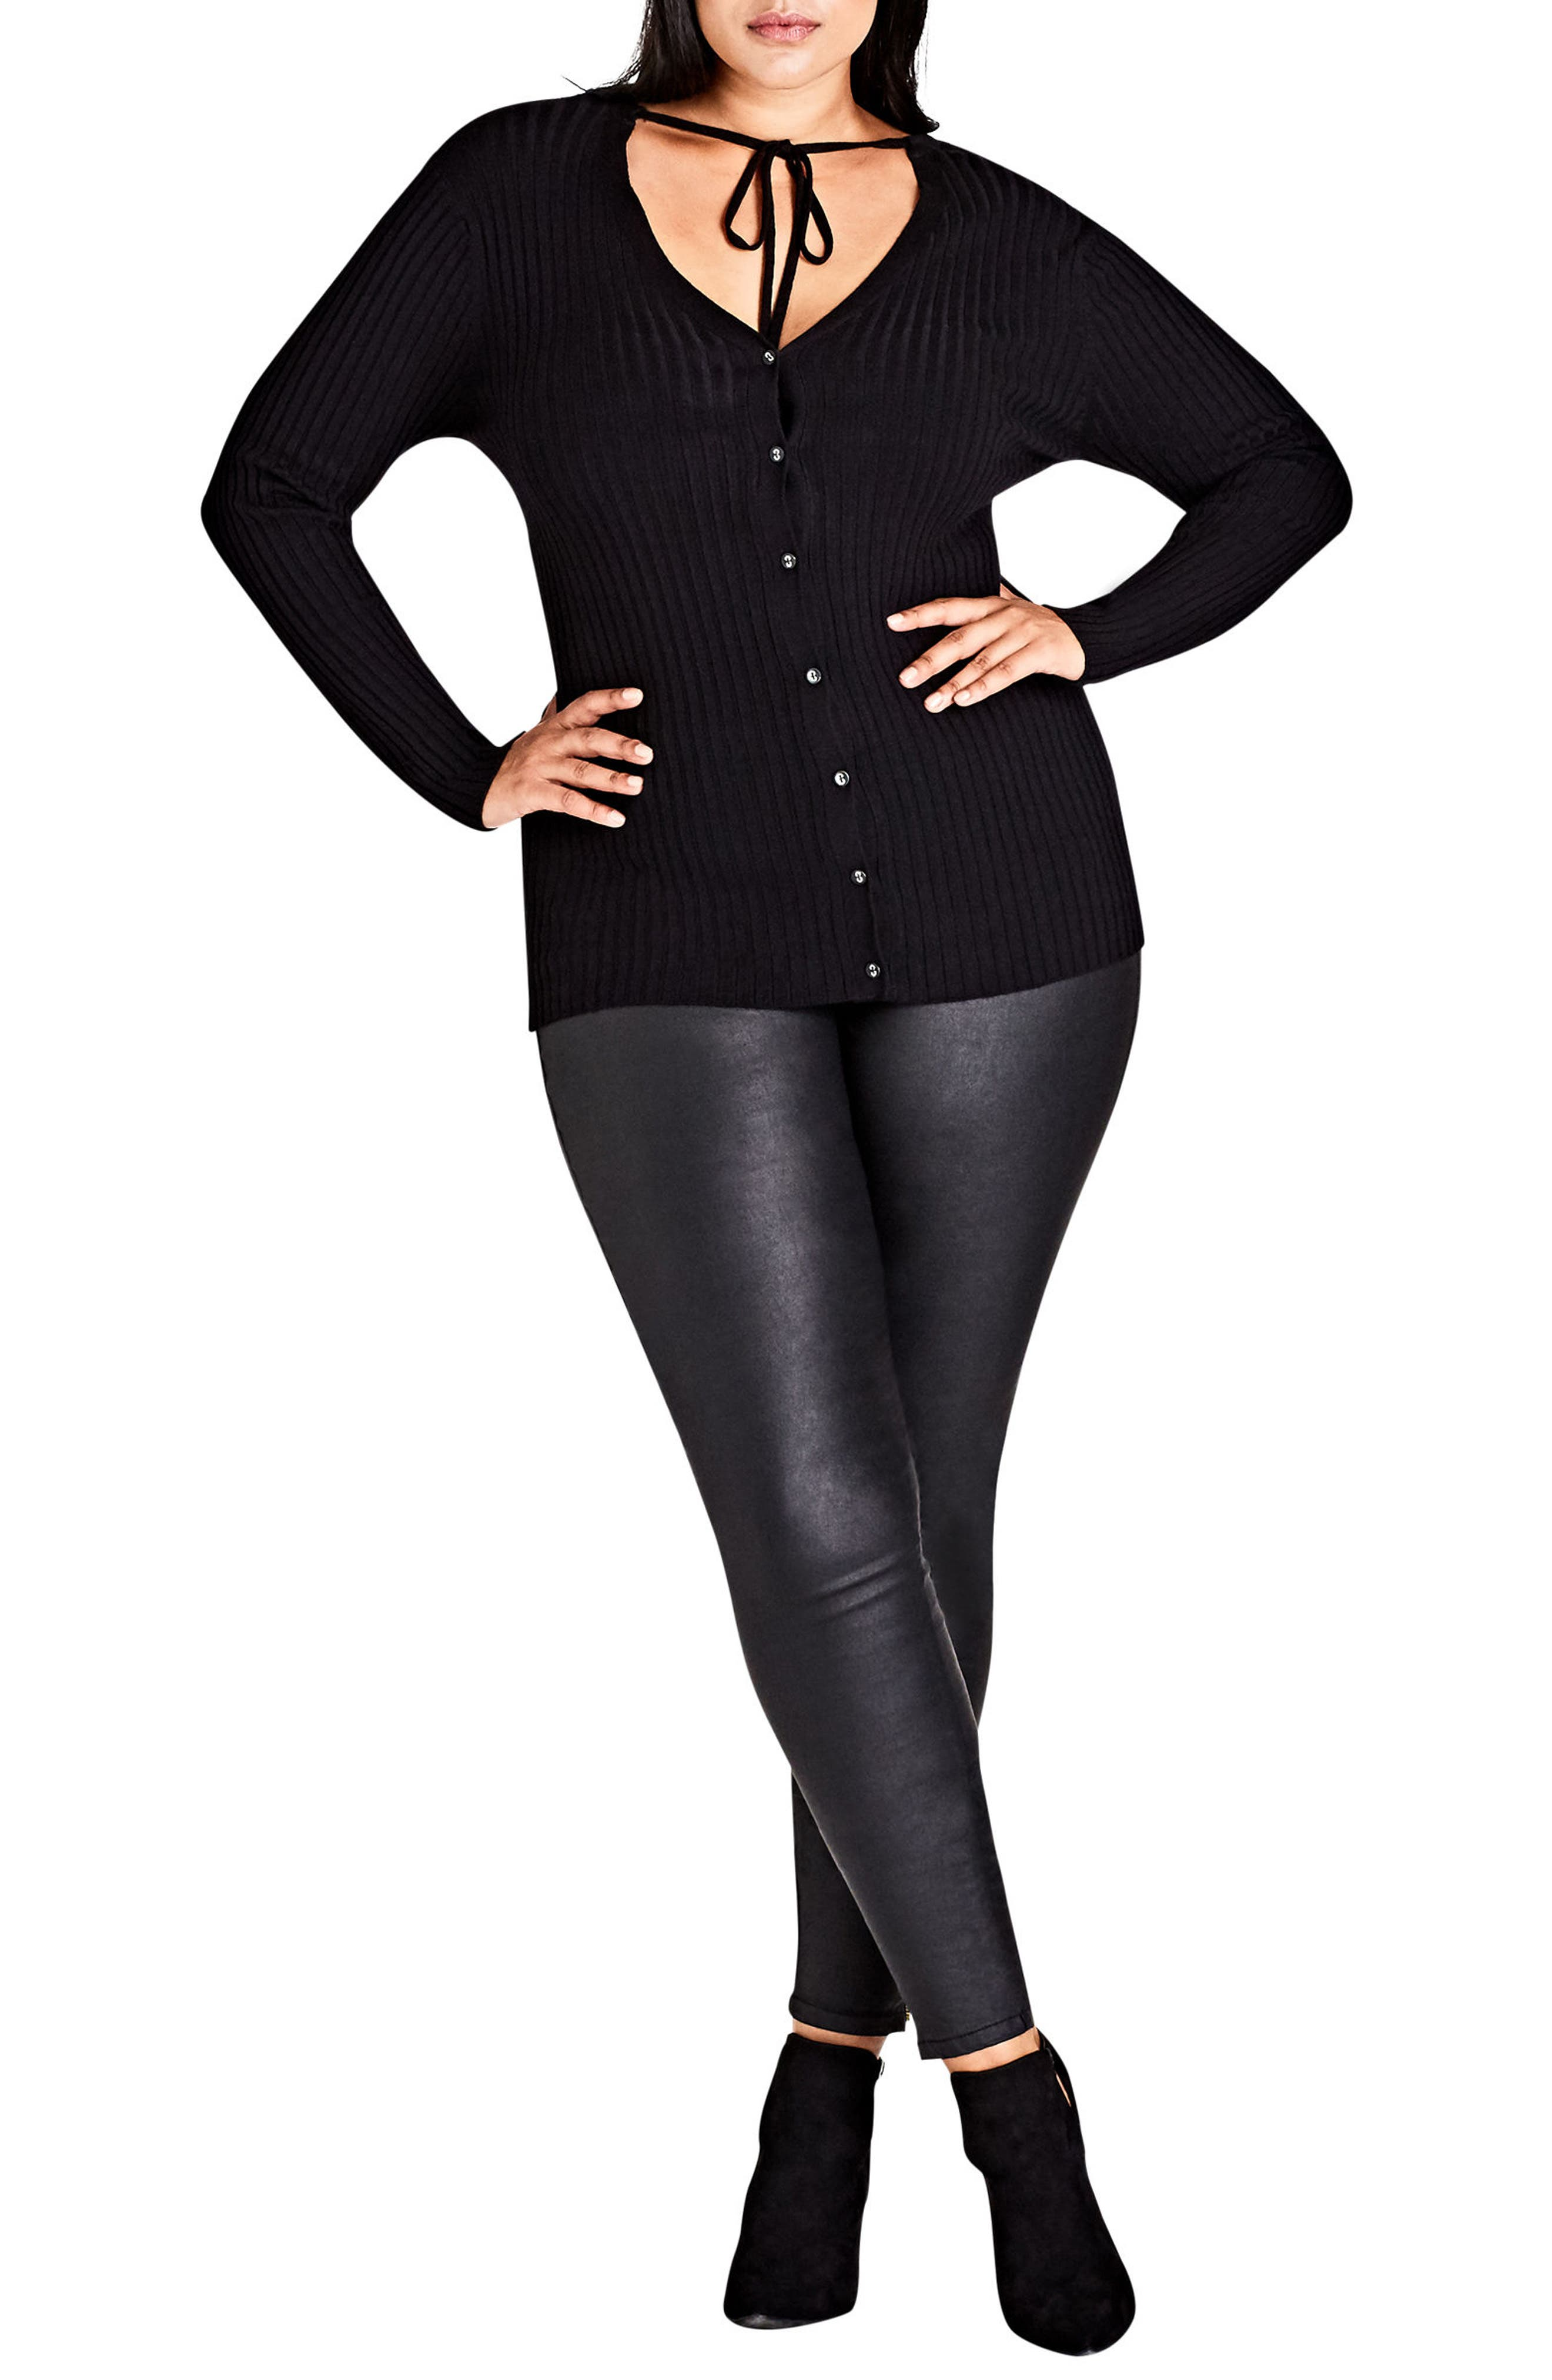 Alternate Image 1 Selected - City Chic Neck Tie Cardi (Plus Size)